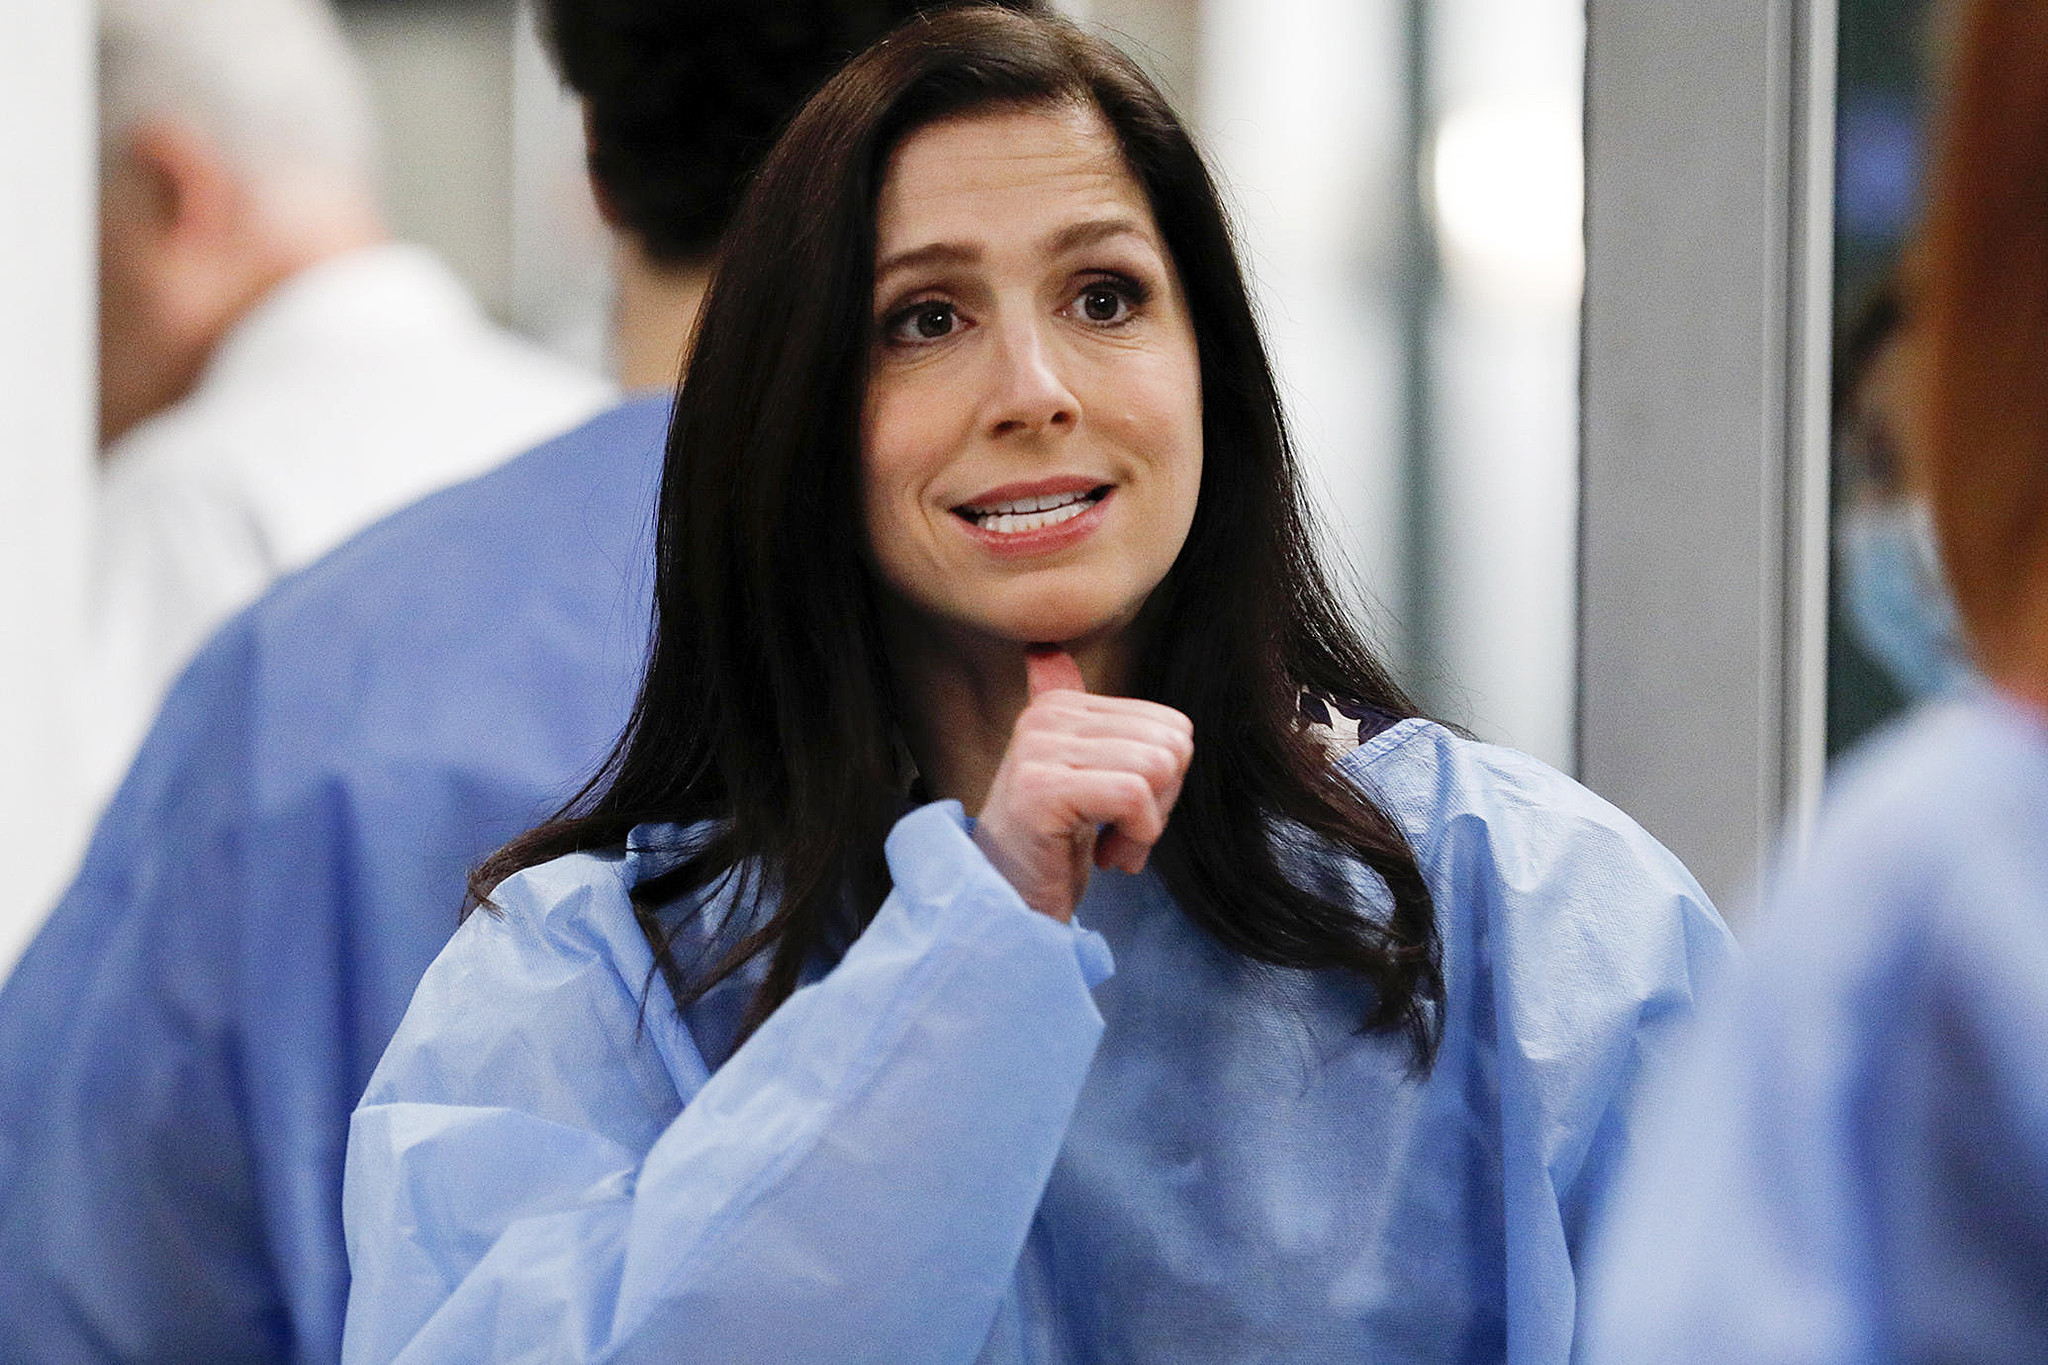 'Grey's Anatomy' breaks barriers with first deaf doctor on primetime TV